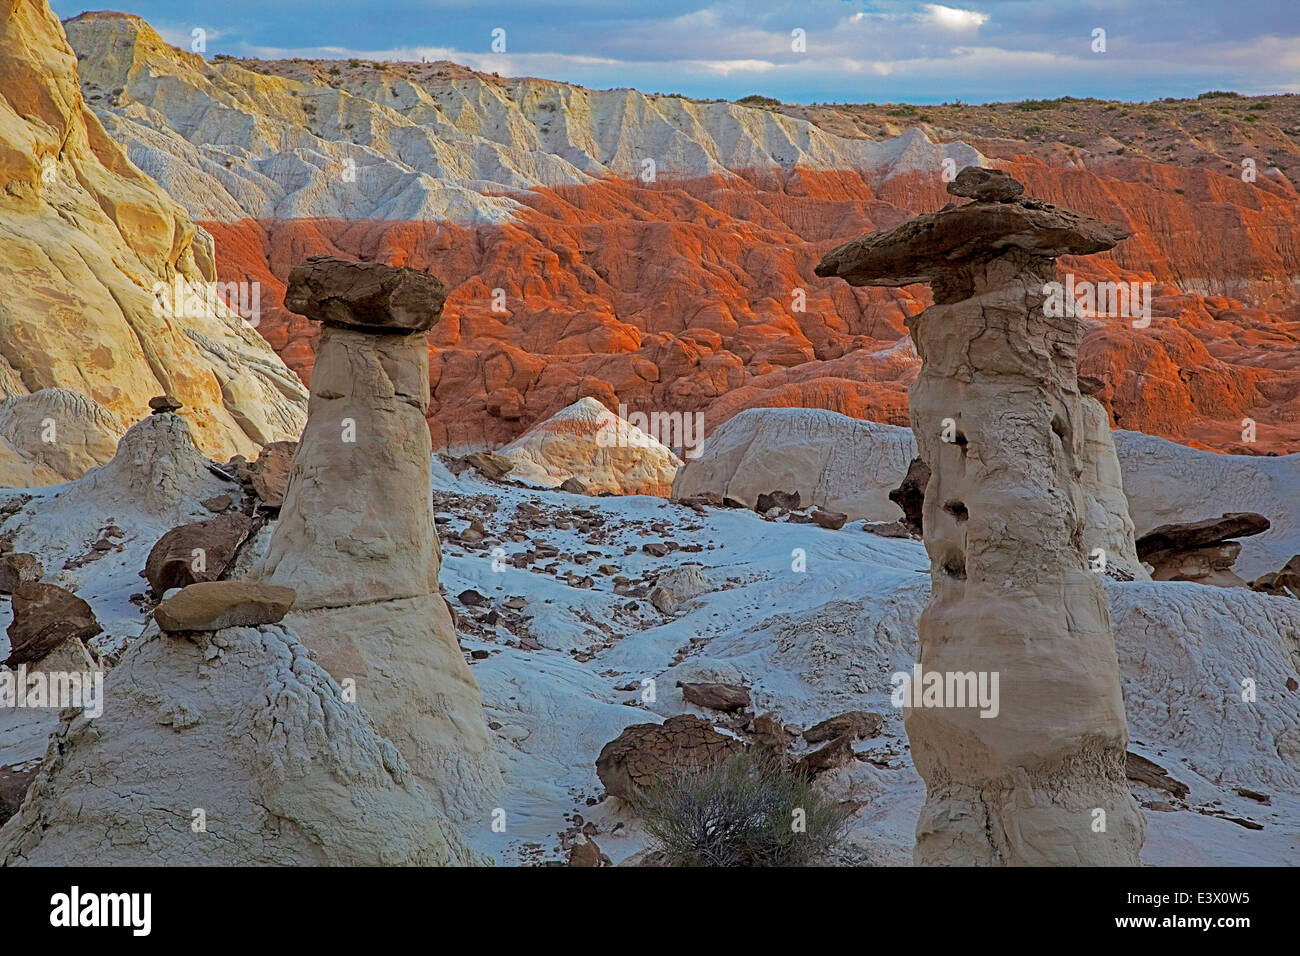 USA, Utah, Grand Staircase Escalante-National Monument, Toadstool Rocks Stock Photo